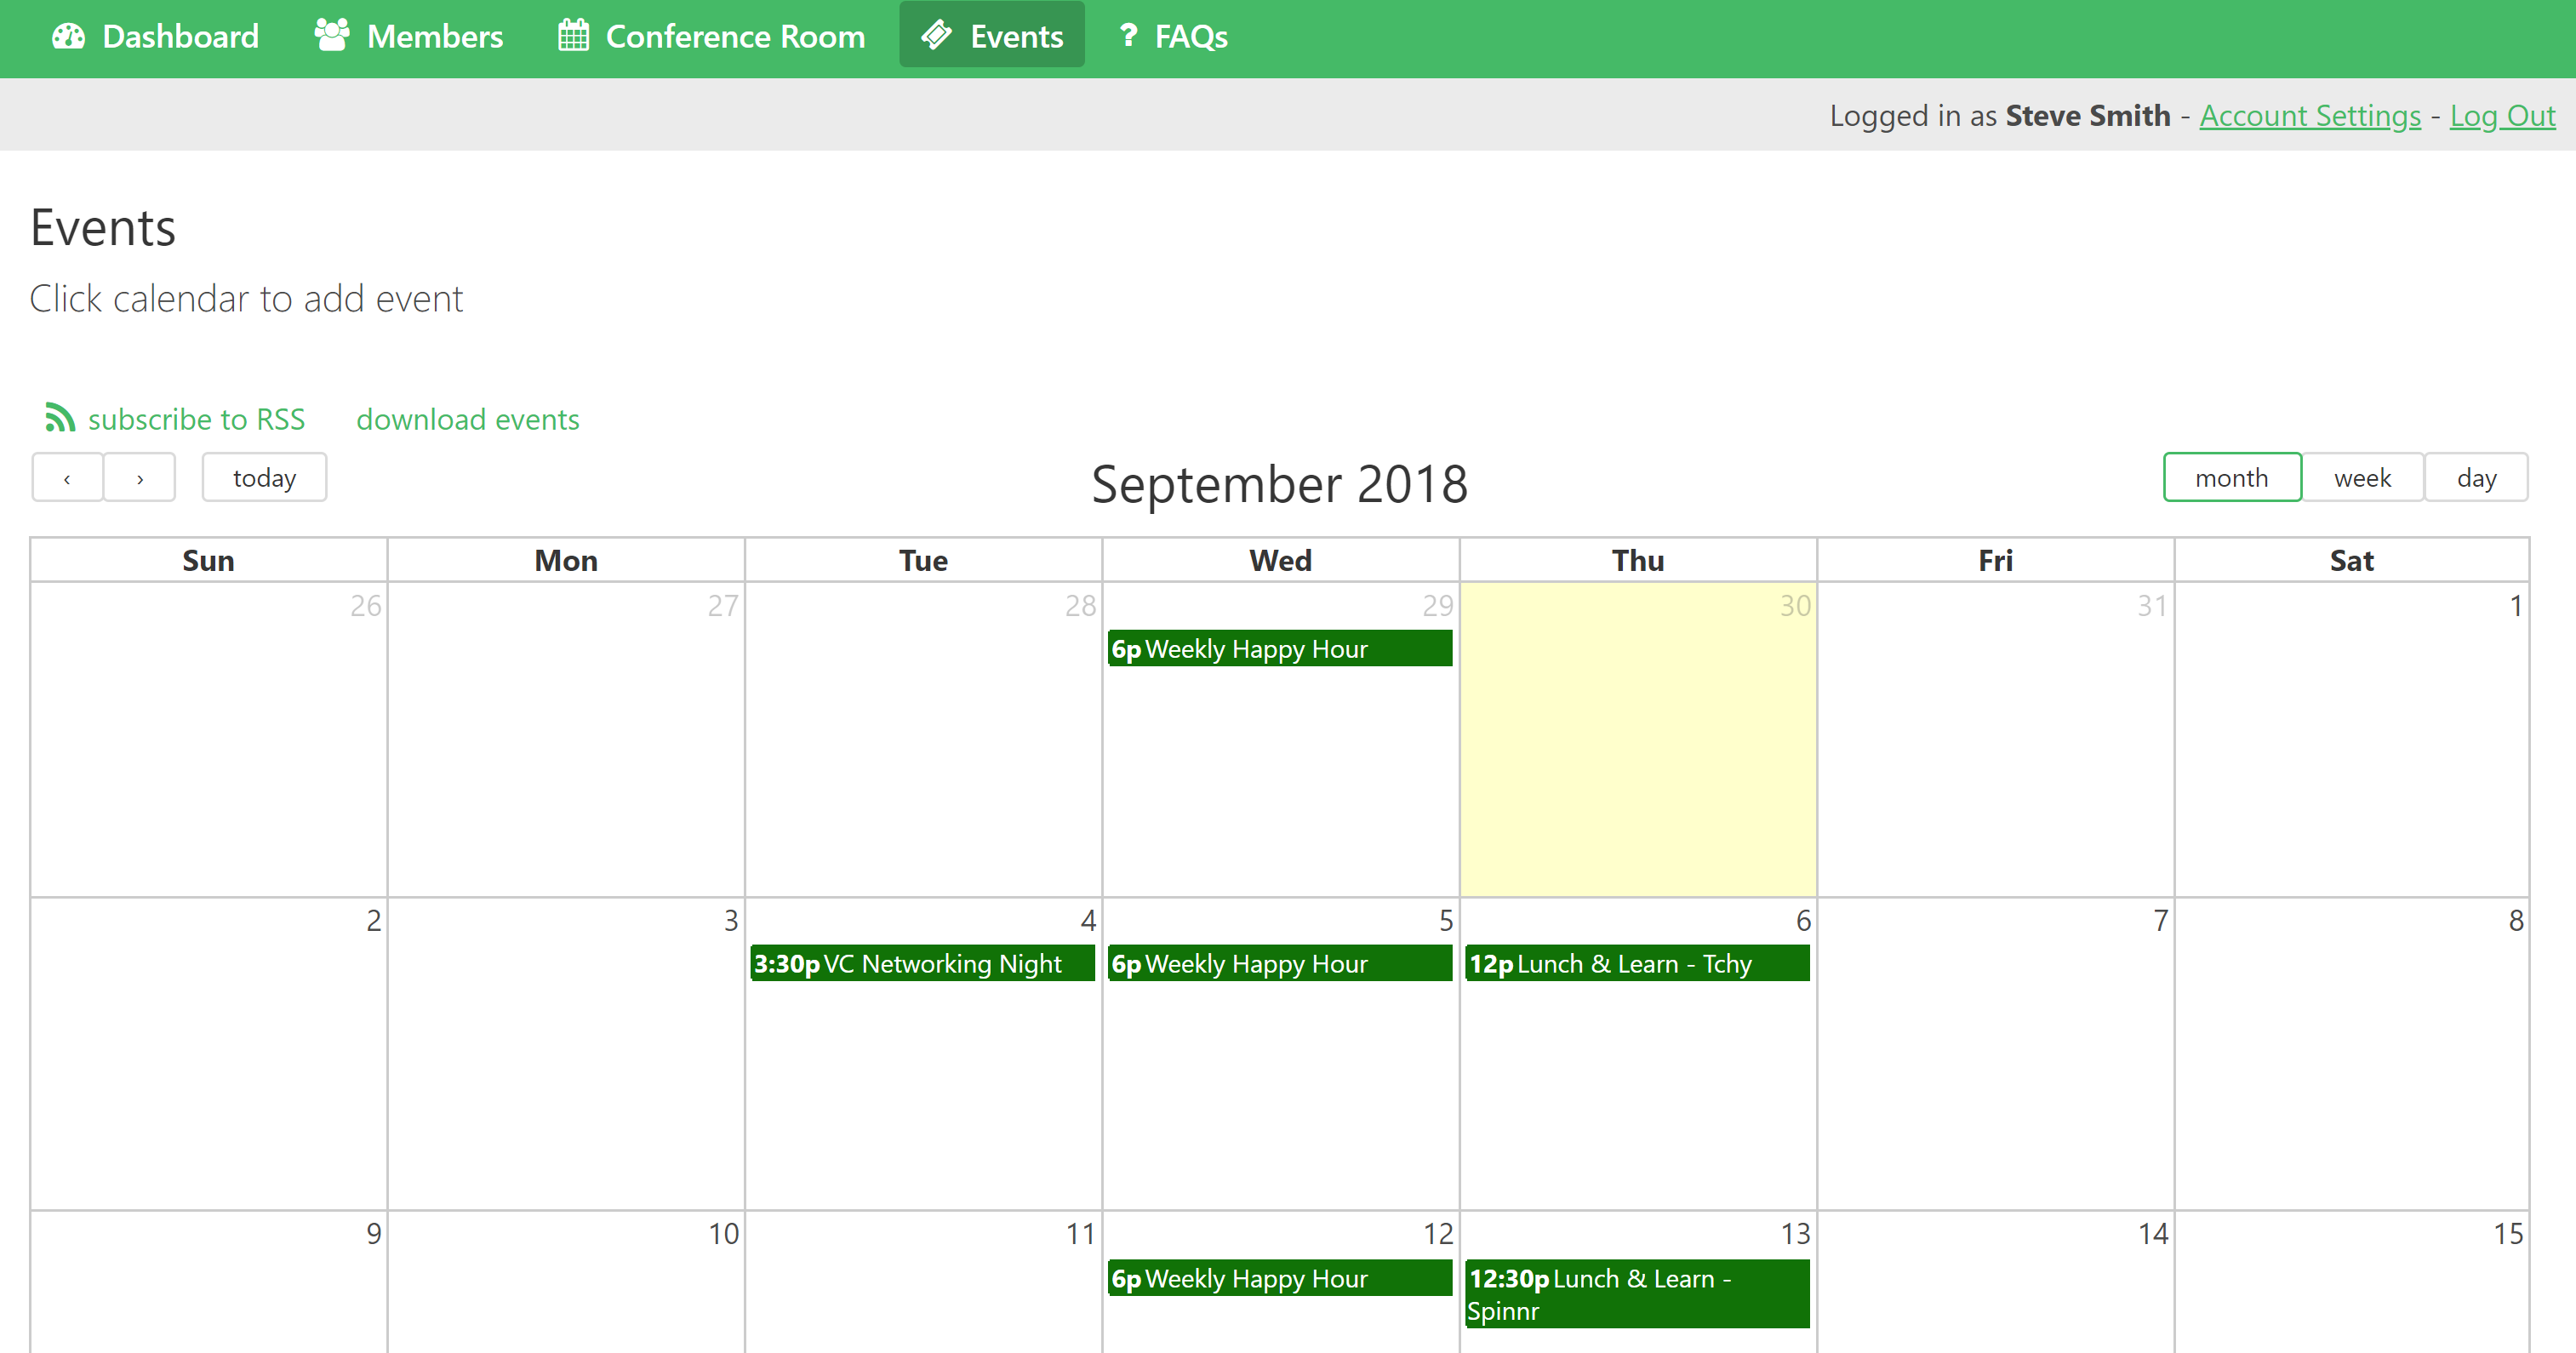 A calendar view makes it easy for members to see upcoming events. They can click on the calendar to add their own event.